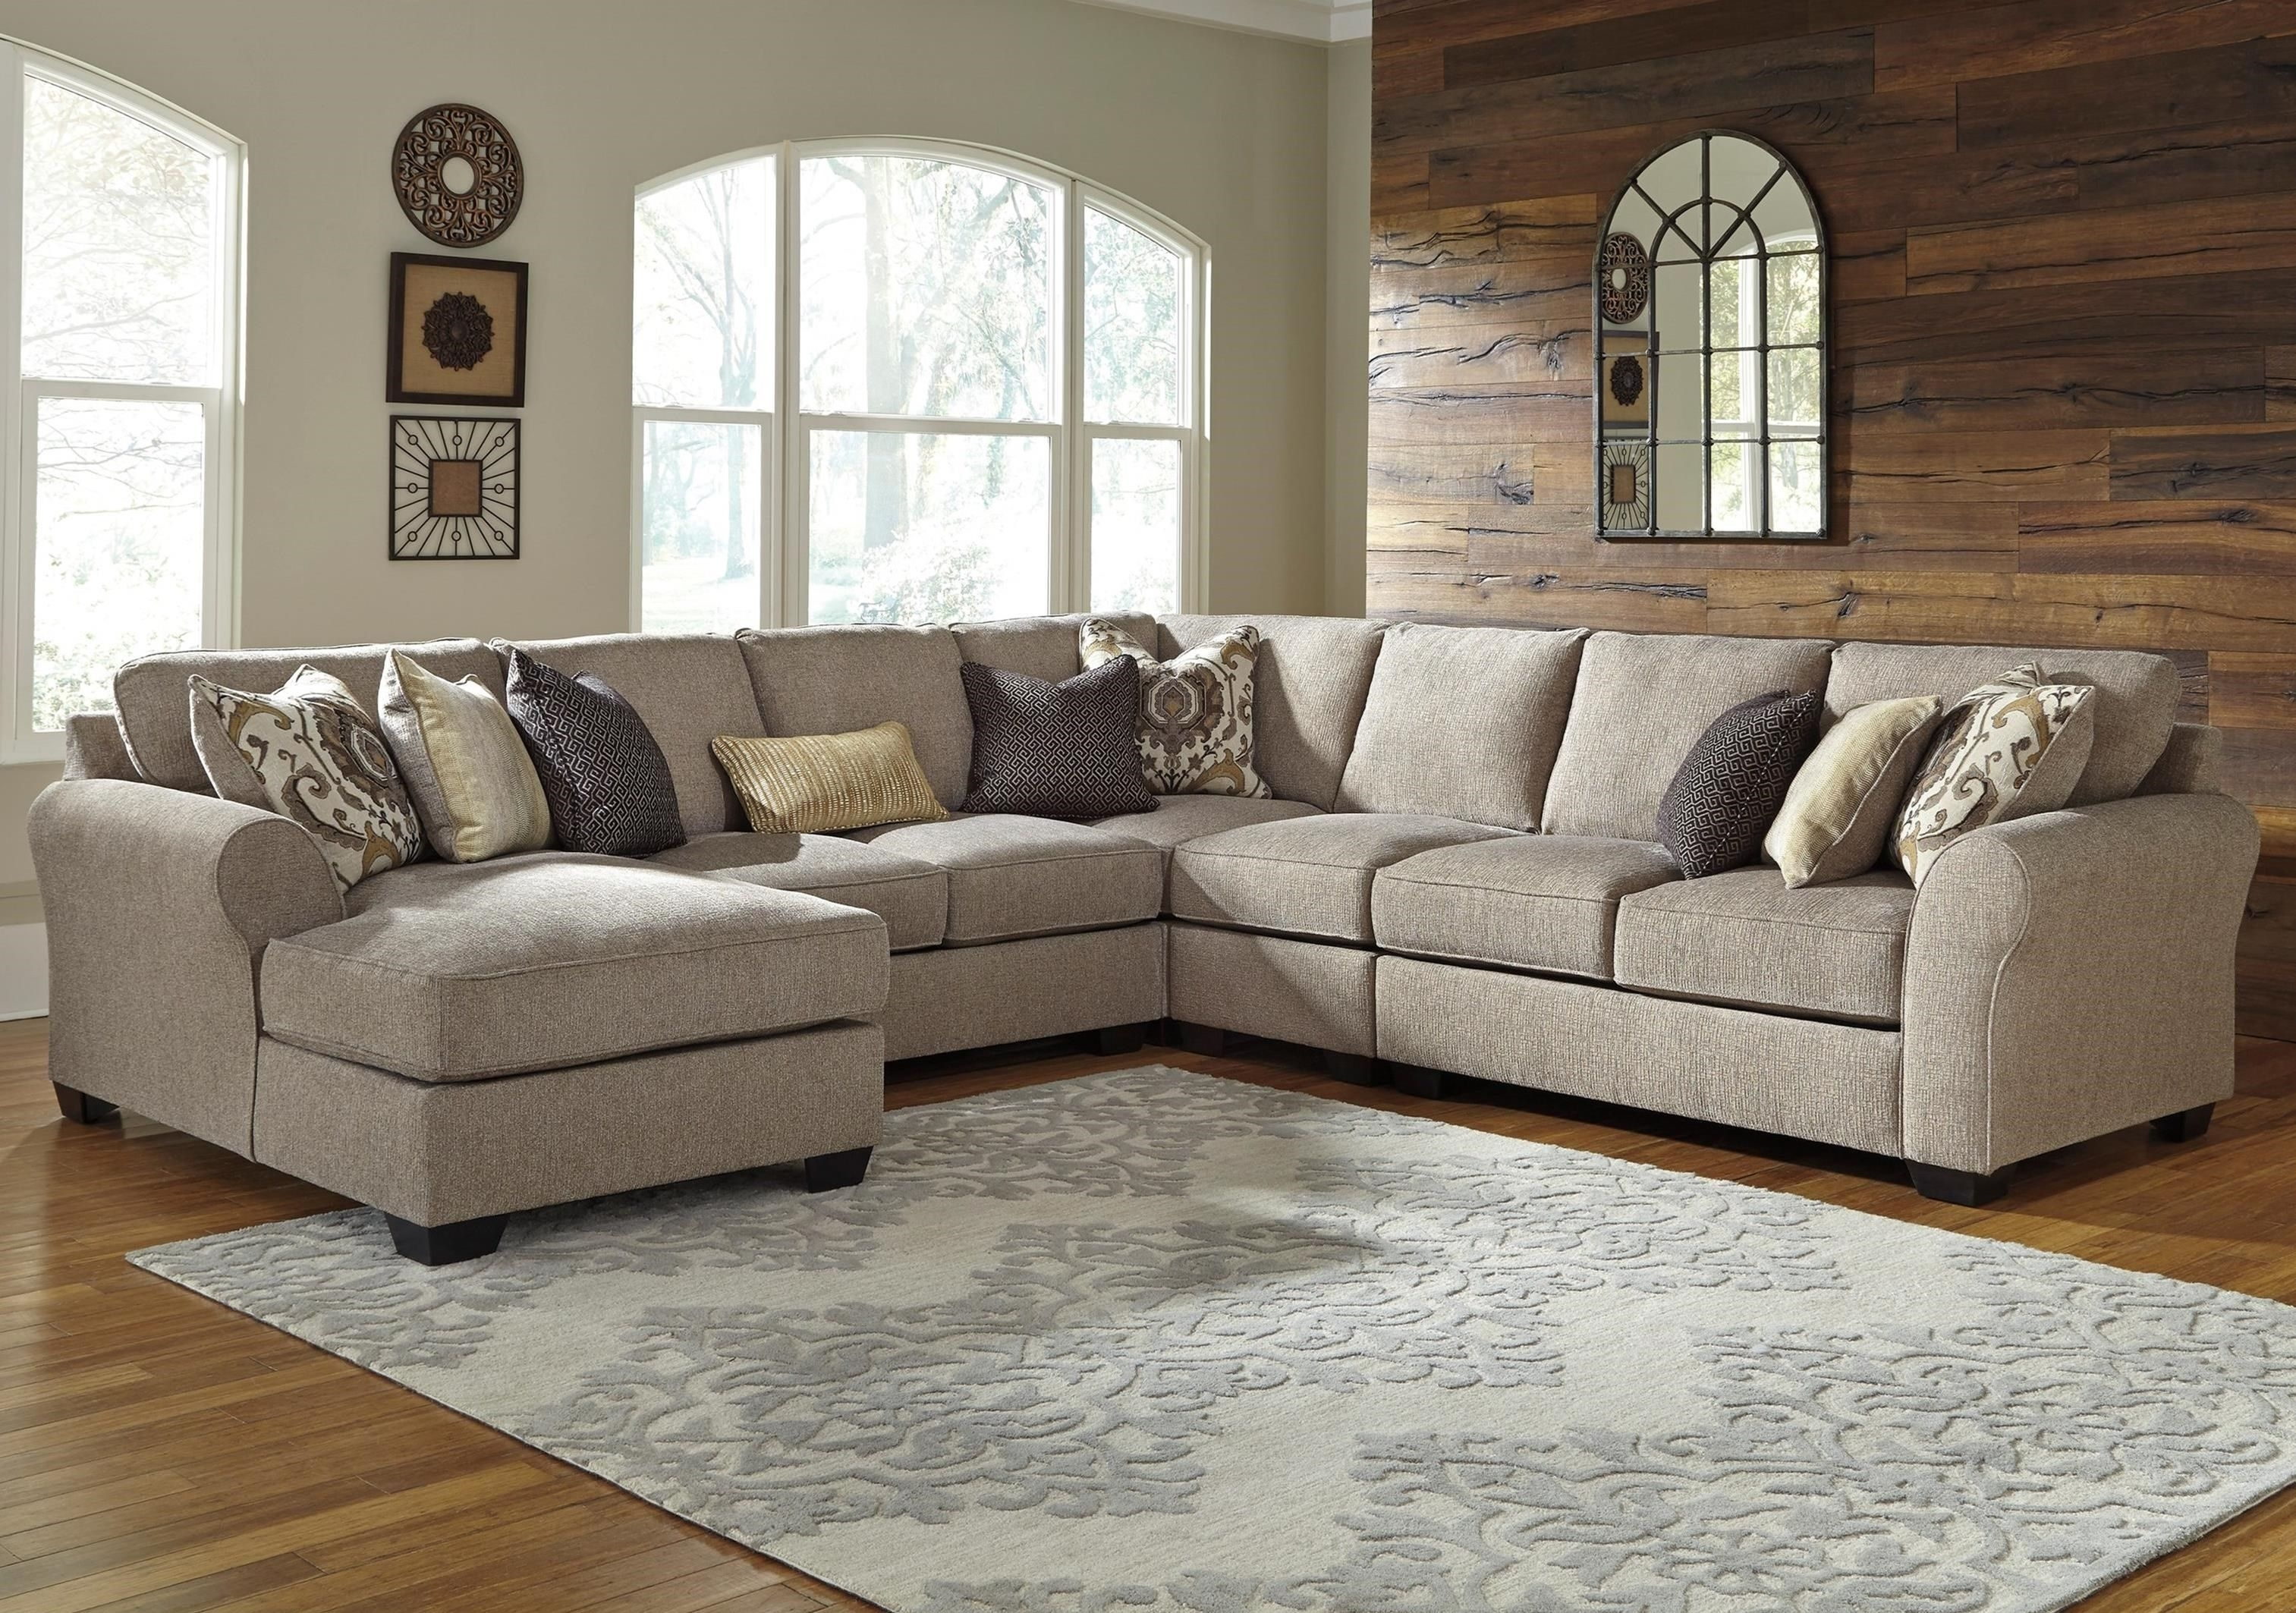 Pantomine 5 Piece Sectional With Left Chaisebenchcraft At In Denali Charcoal Grey 6 Piece Reclining Sectionals With 2 Power Headrests (Image 20 of 25)